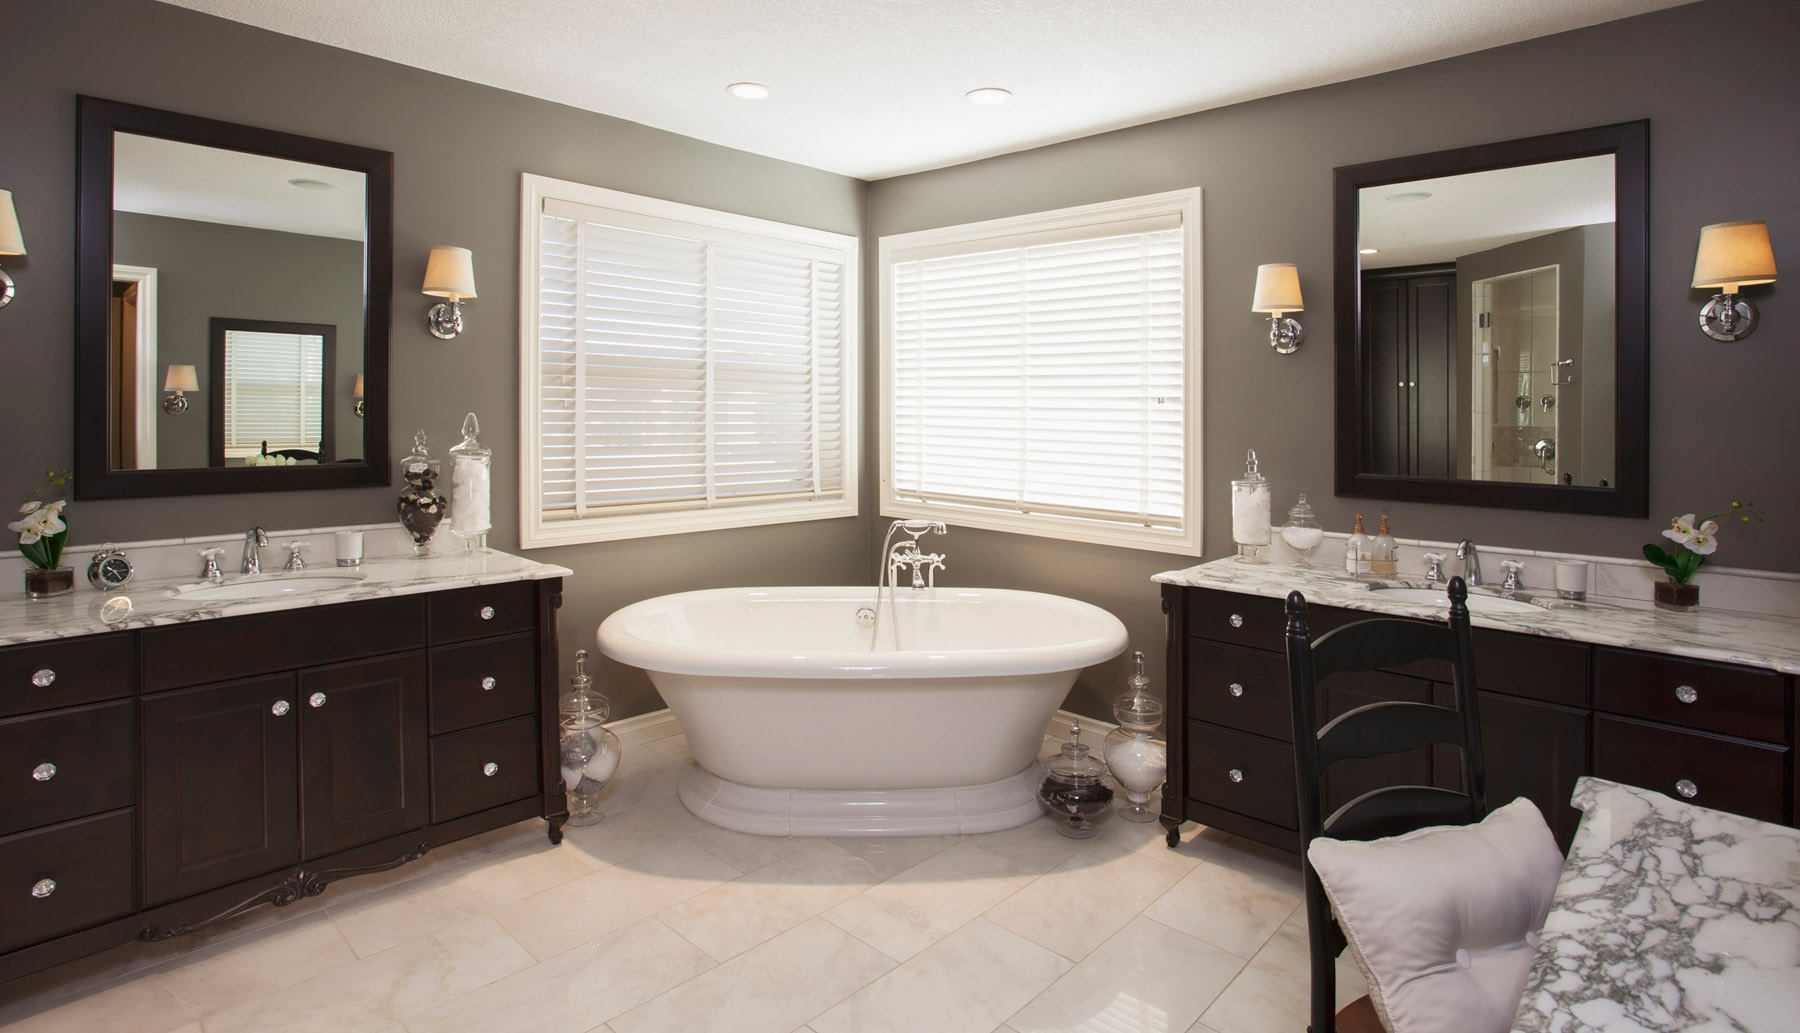 Bathroom renovations with a scent of citrus for Washroom renovation ideas